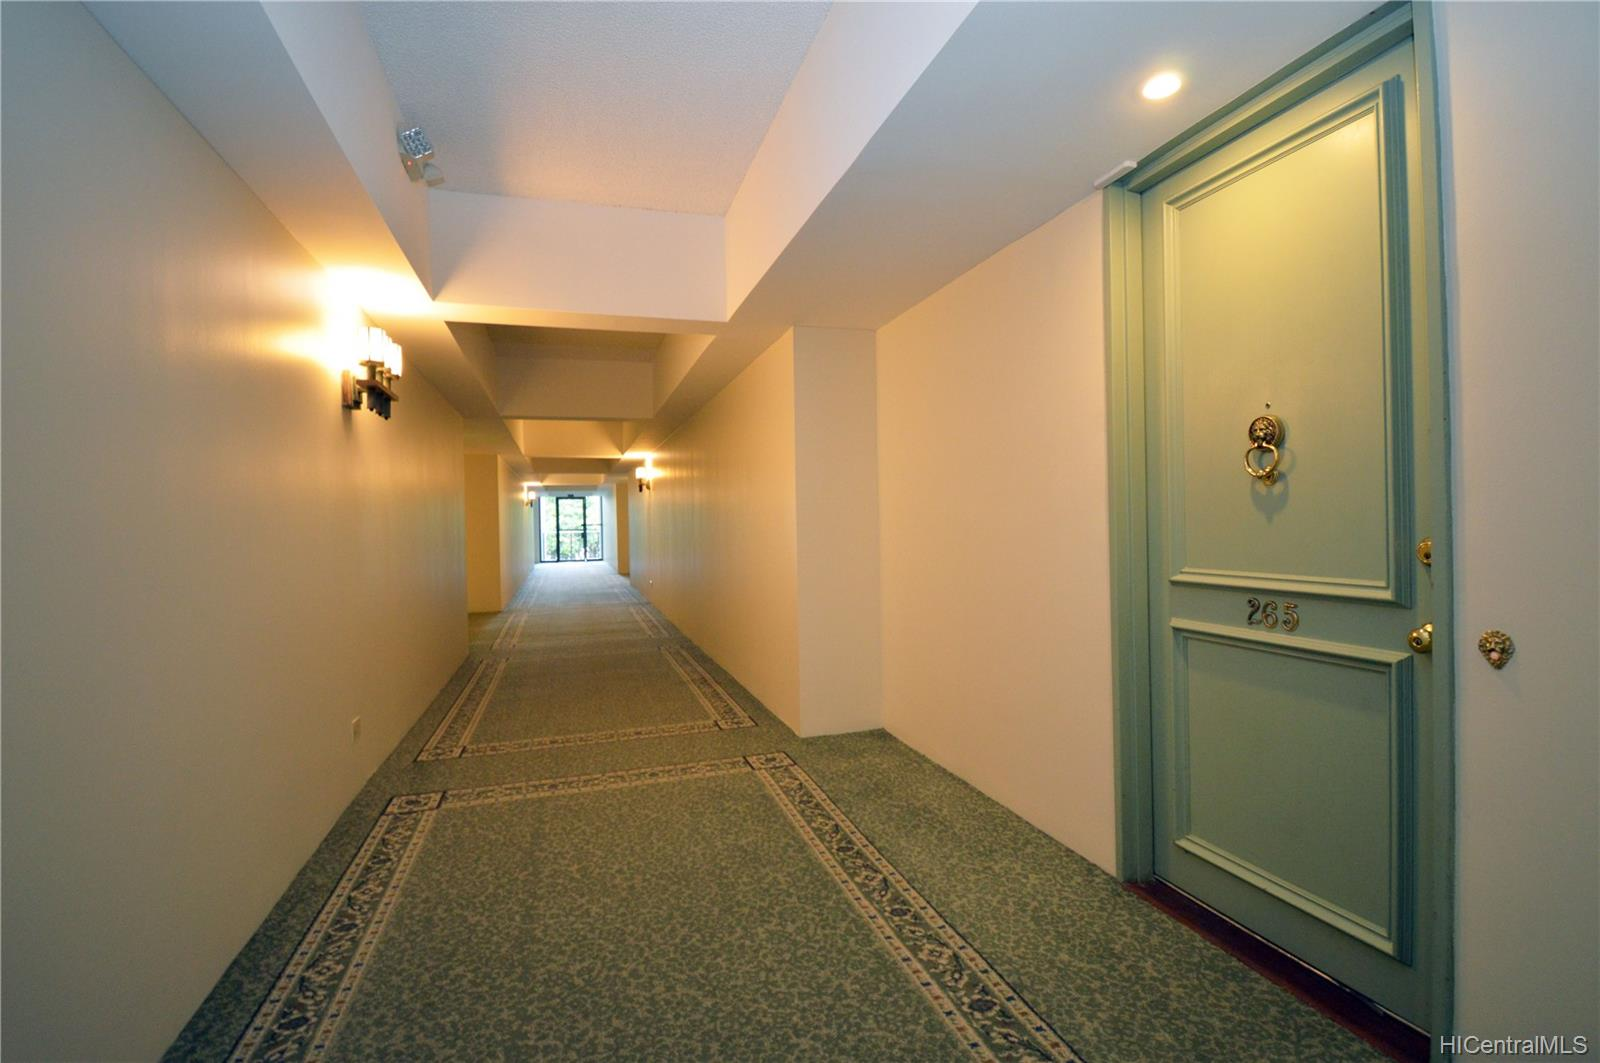 Kahala Beach 4999 Kahala Avenue  Unit 265